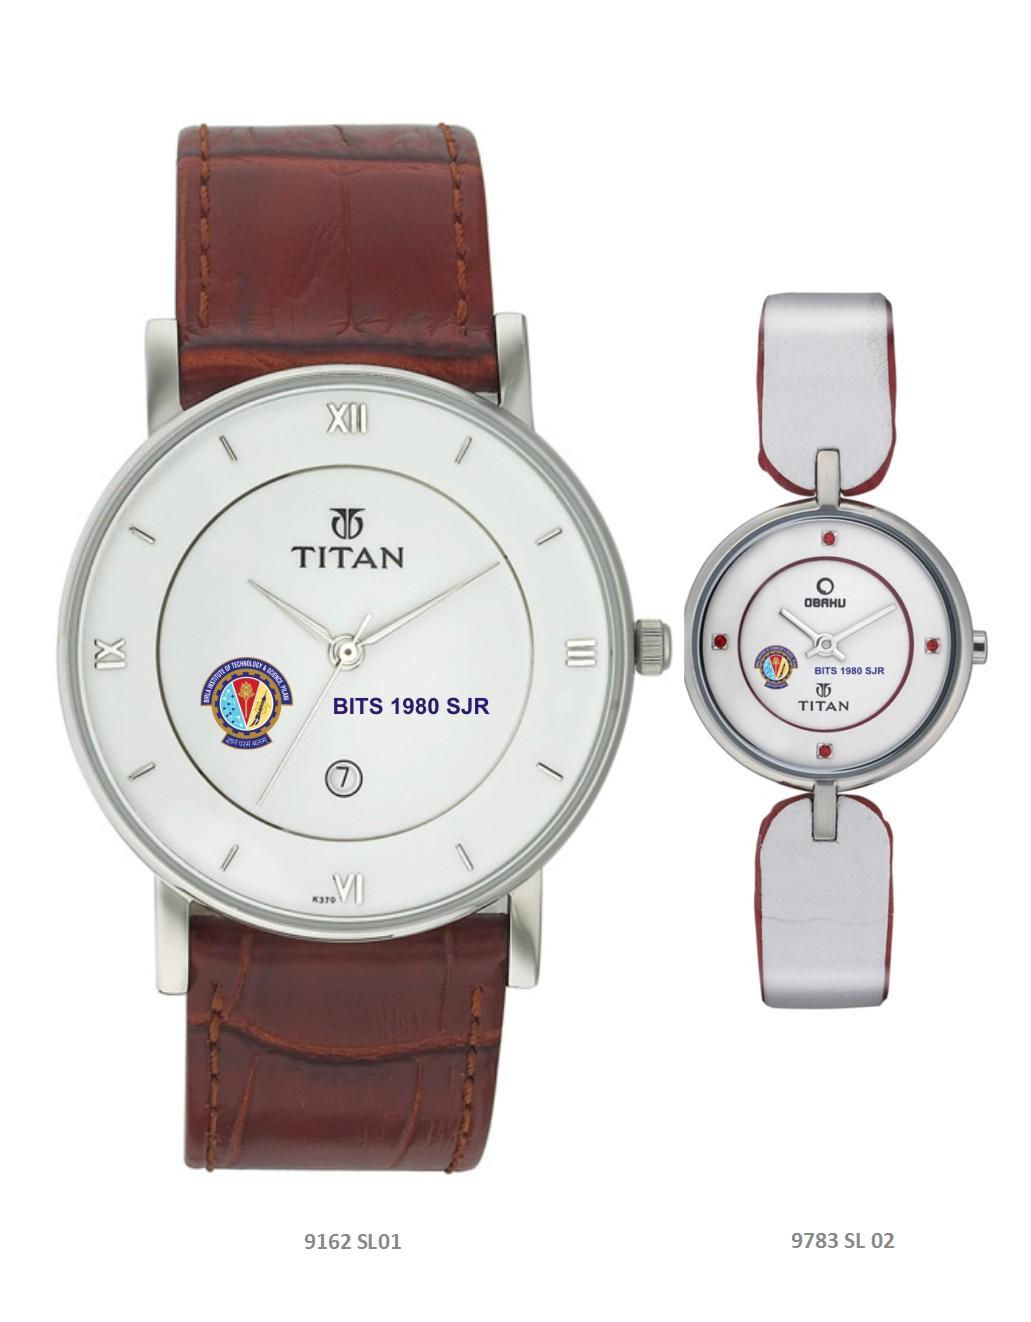 Titan Watches Model C117 BD Price